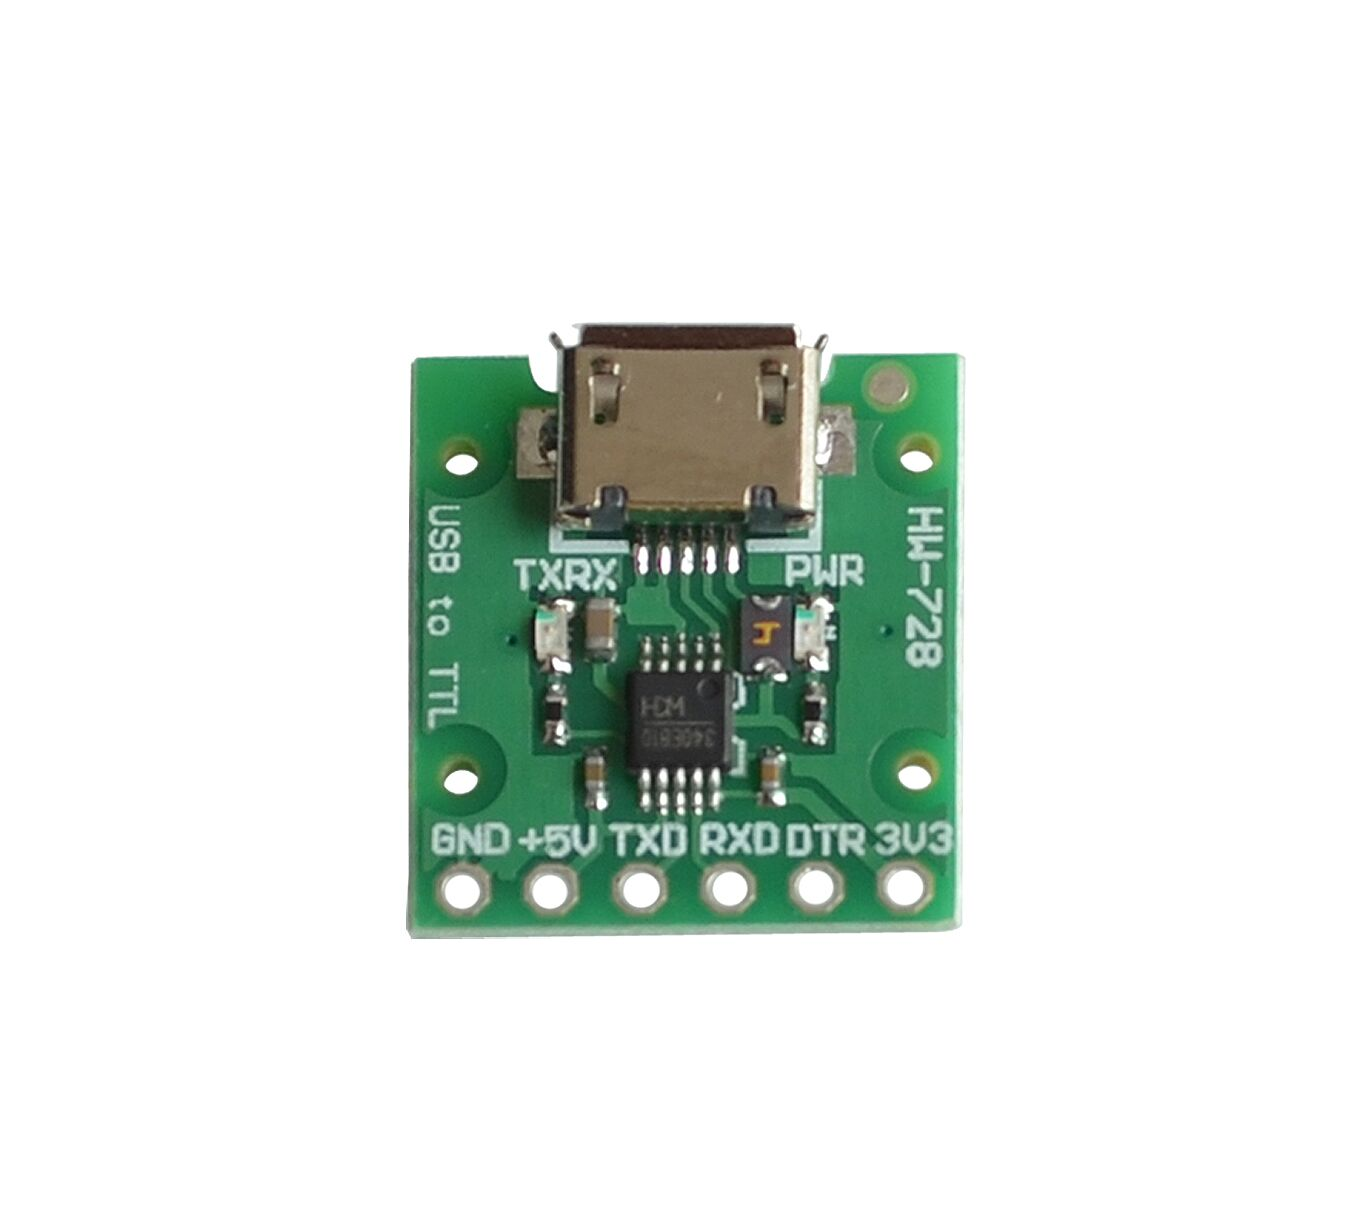 Ch340e Usb To Ttl Serial Converter 5v/3.3v Alternative Ch340g Module For Pro Mini Available In Various Designs And Specifications For Your Selection Electronic Components & Supplies Active Components